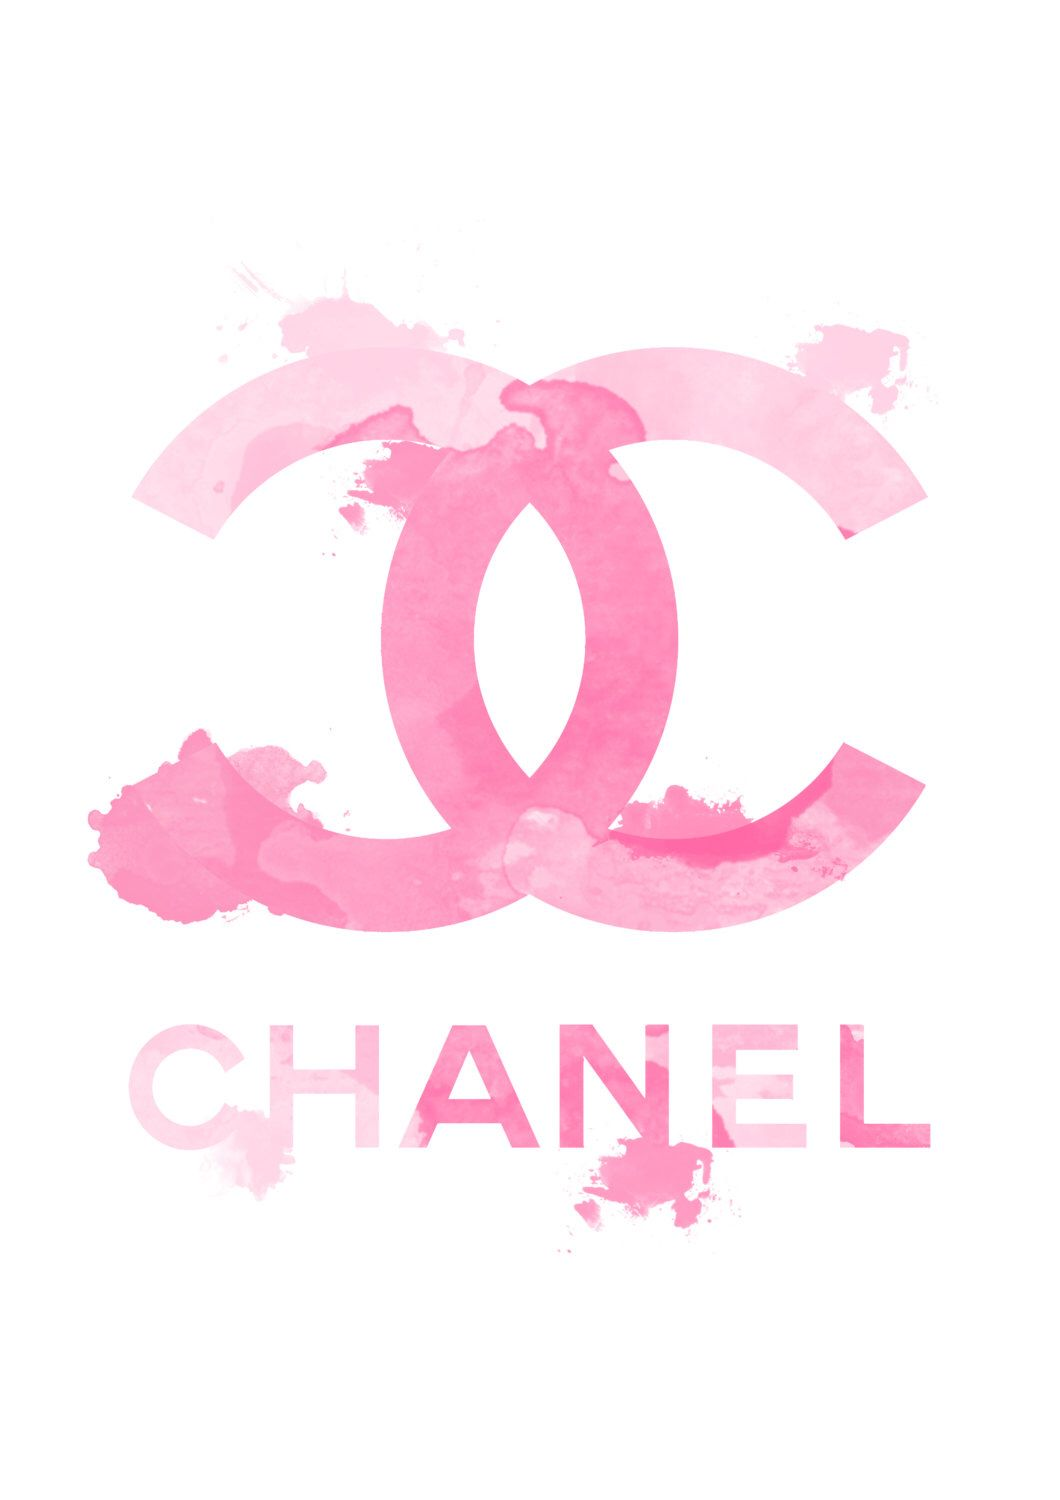 Chanel Logo Fashion Illustration And Watercolor Art Print Titled Quot Pink Chanel Quot By Koma Art Chanel Wallpapers Pink Art Print Chanel Art